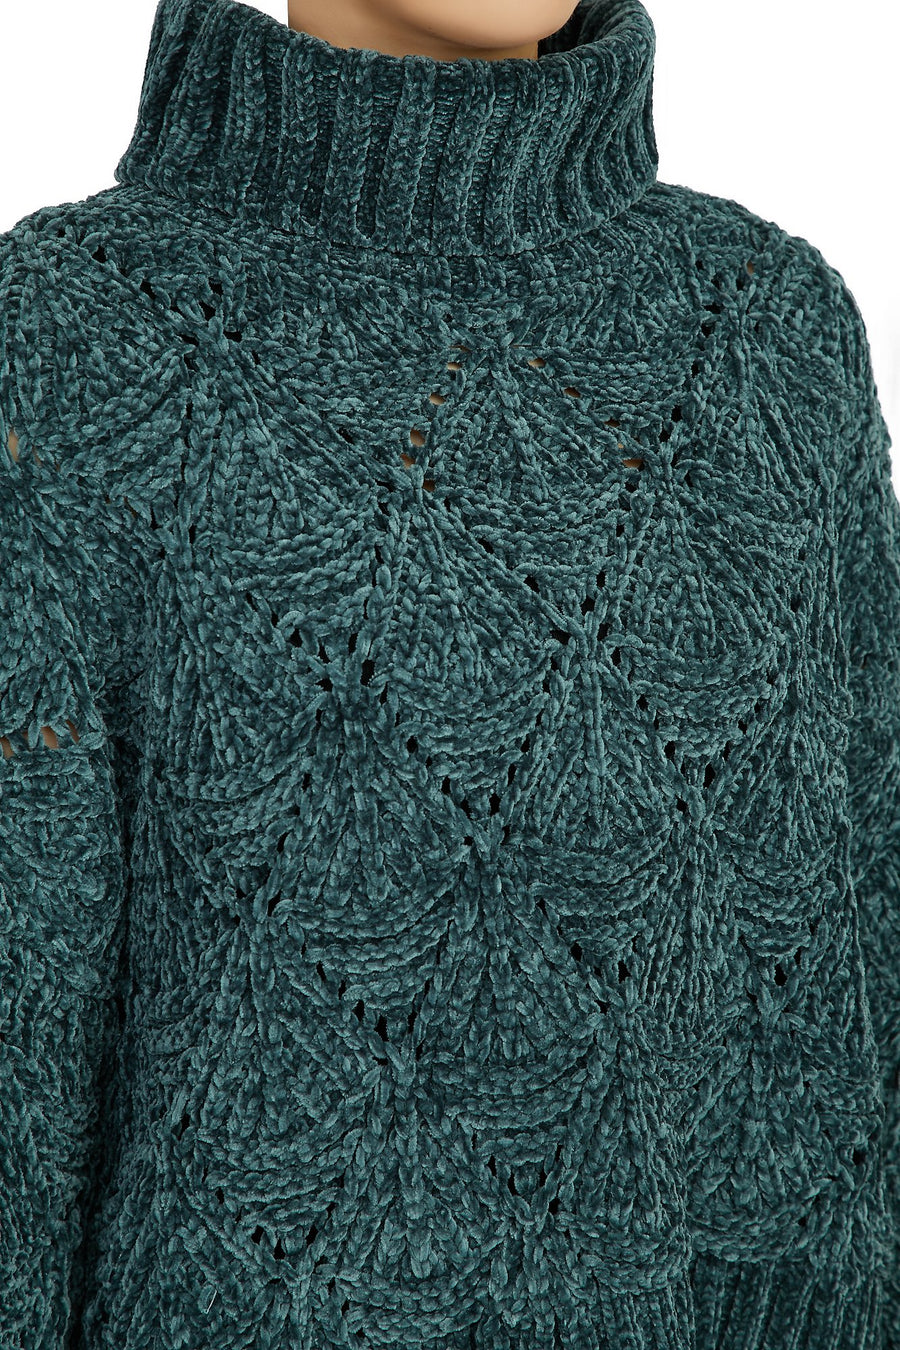 Just Chill Sweater (Green)